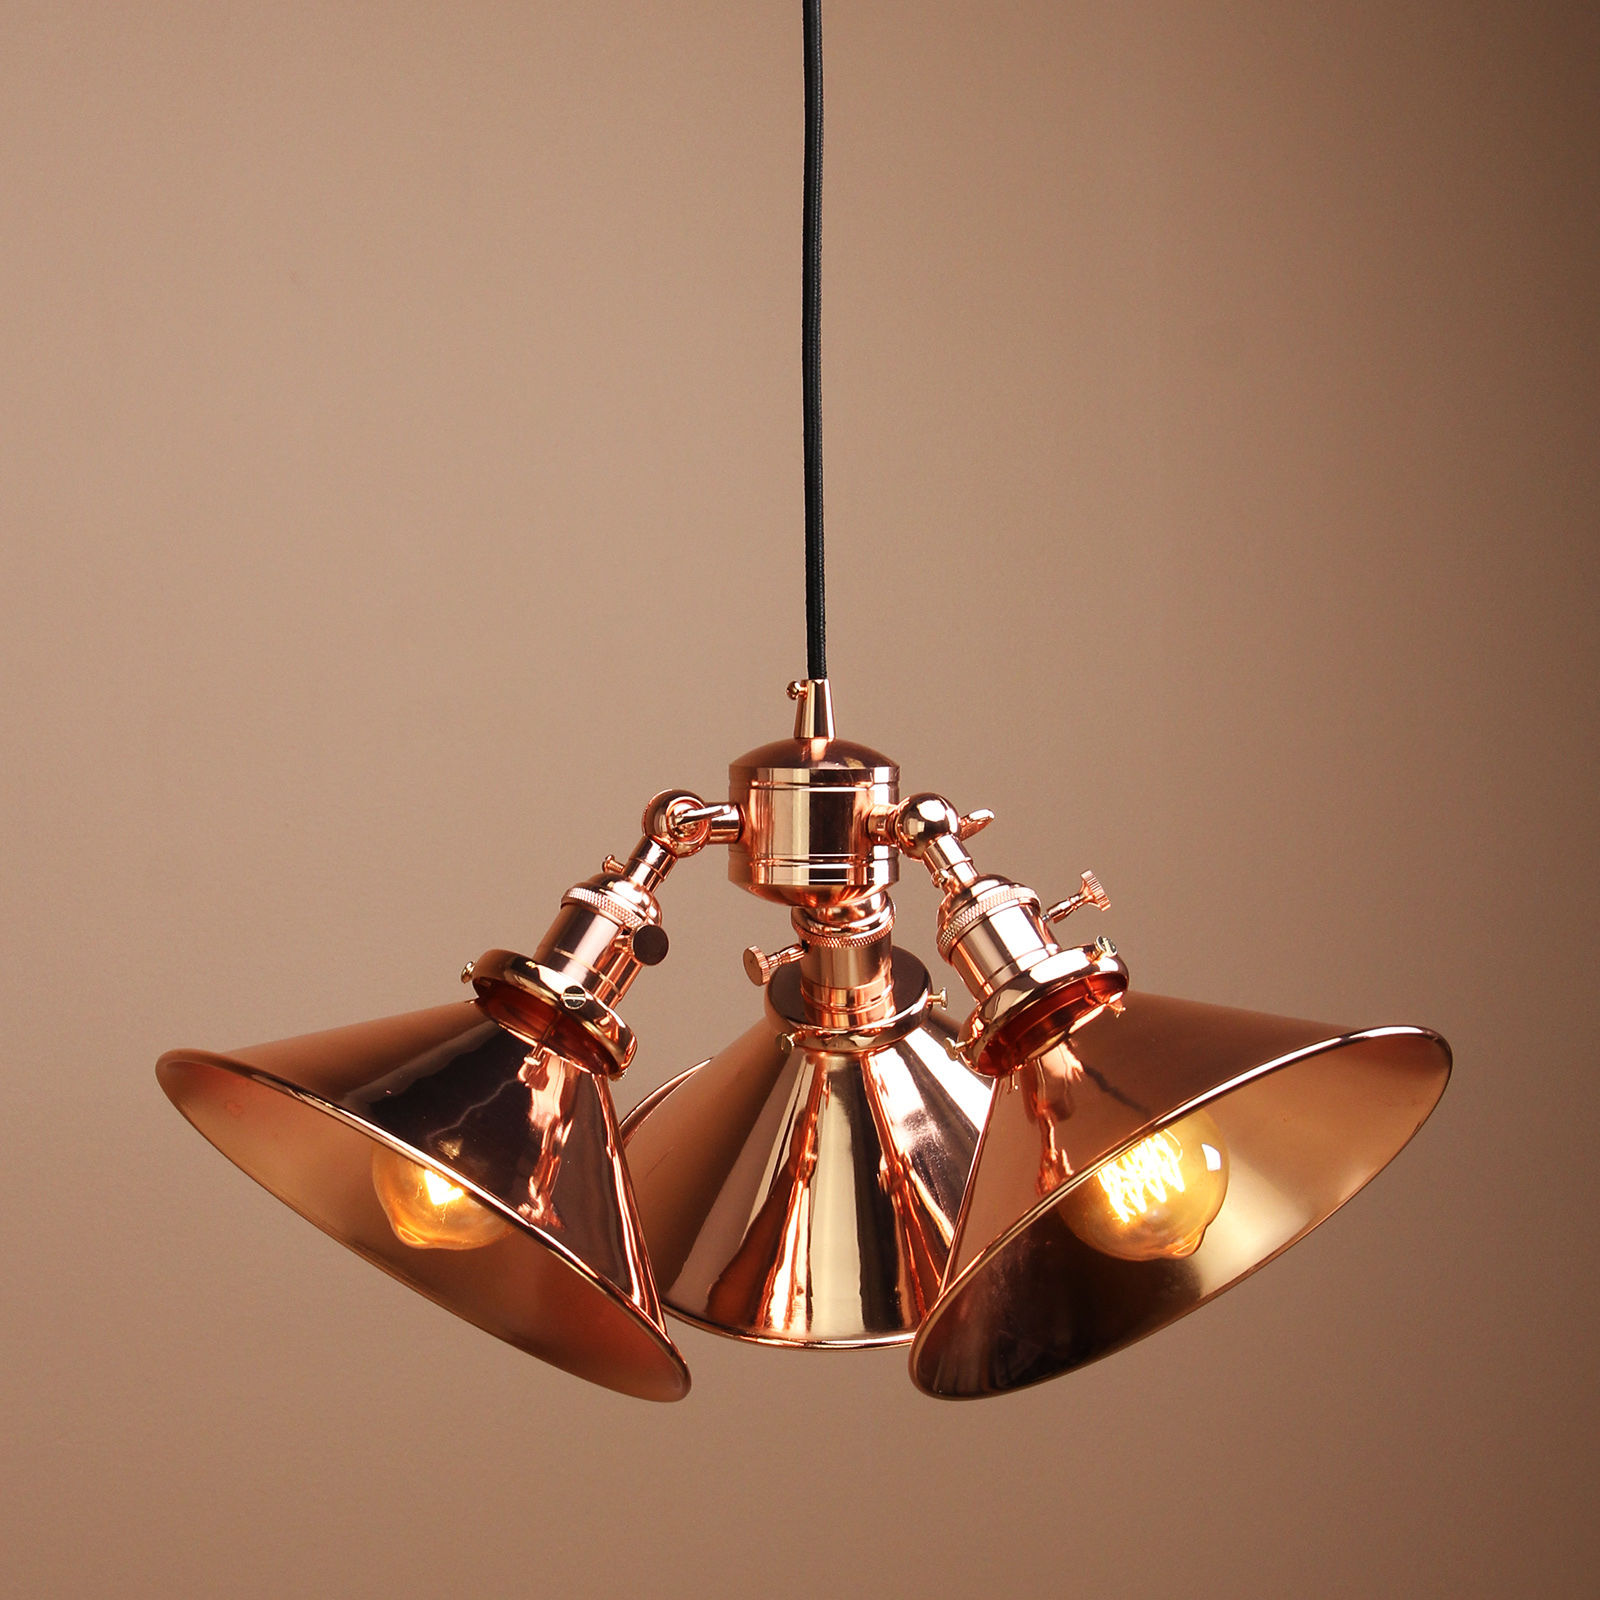 Three-headed Vintage Industrial Copper Hanging Pendant Shade Ceiling Lamp